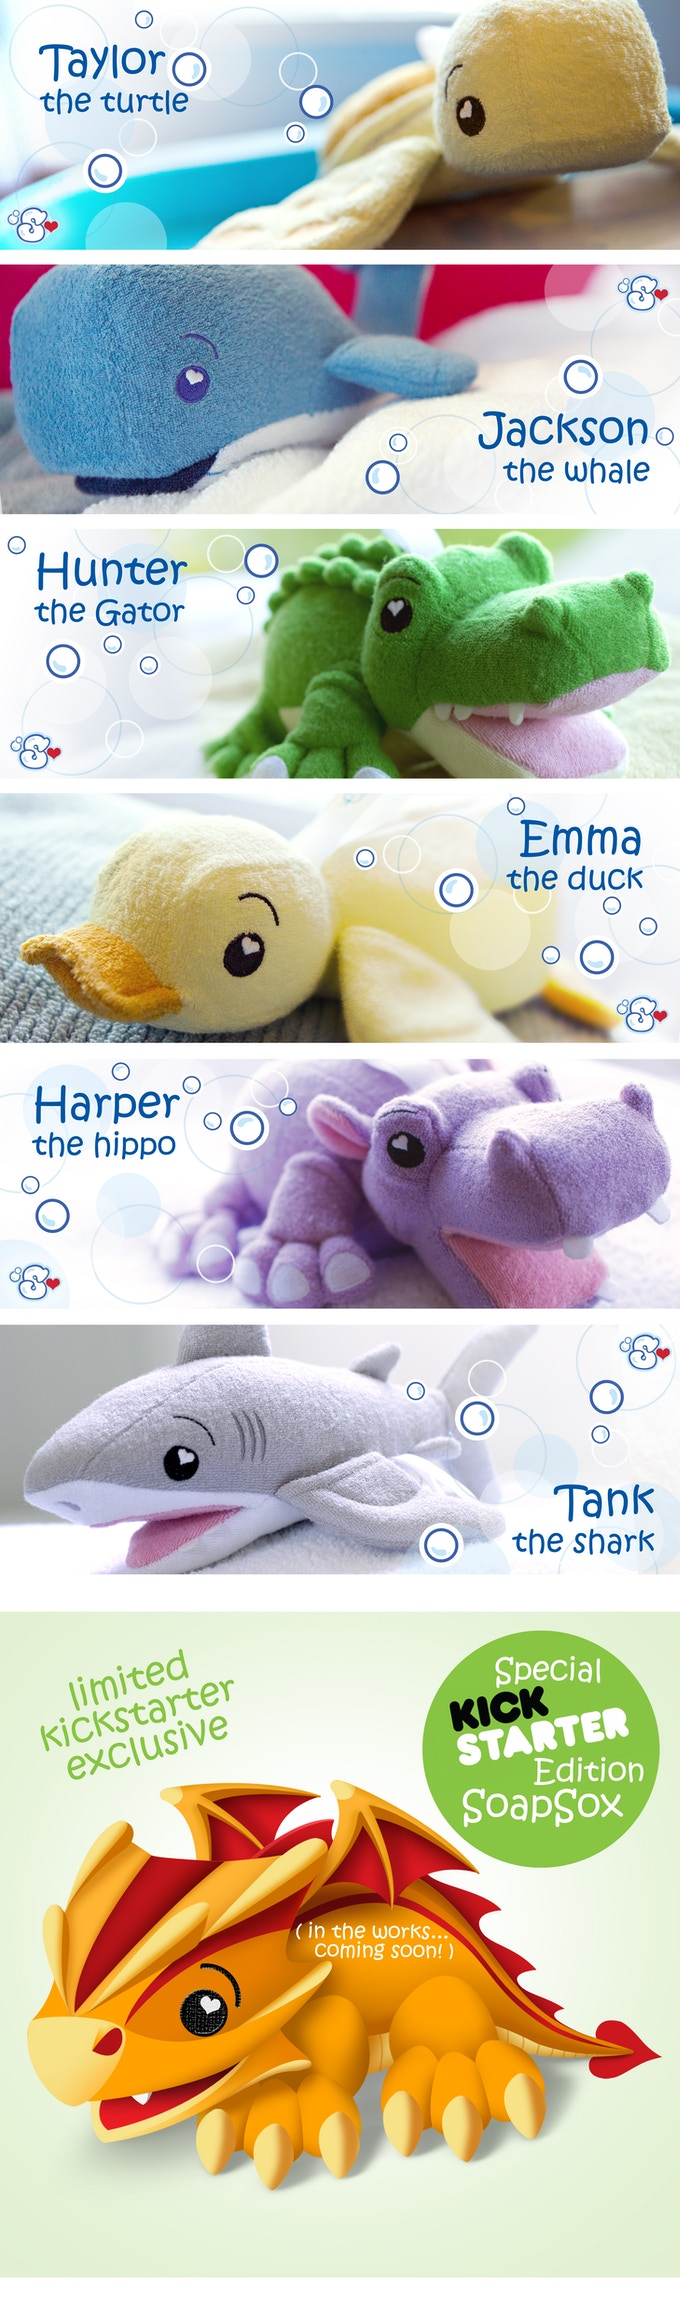 Meet THE FRESHMEN 6 ... and our exclusive SPECIAL KICKSTARTER EDITION SOAPSOX!